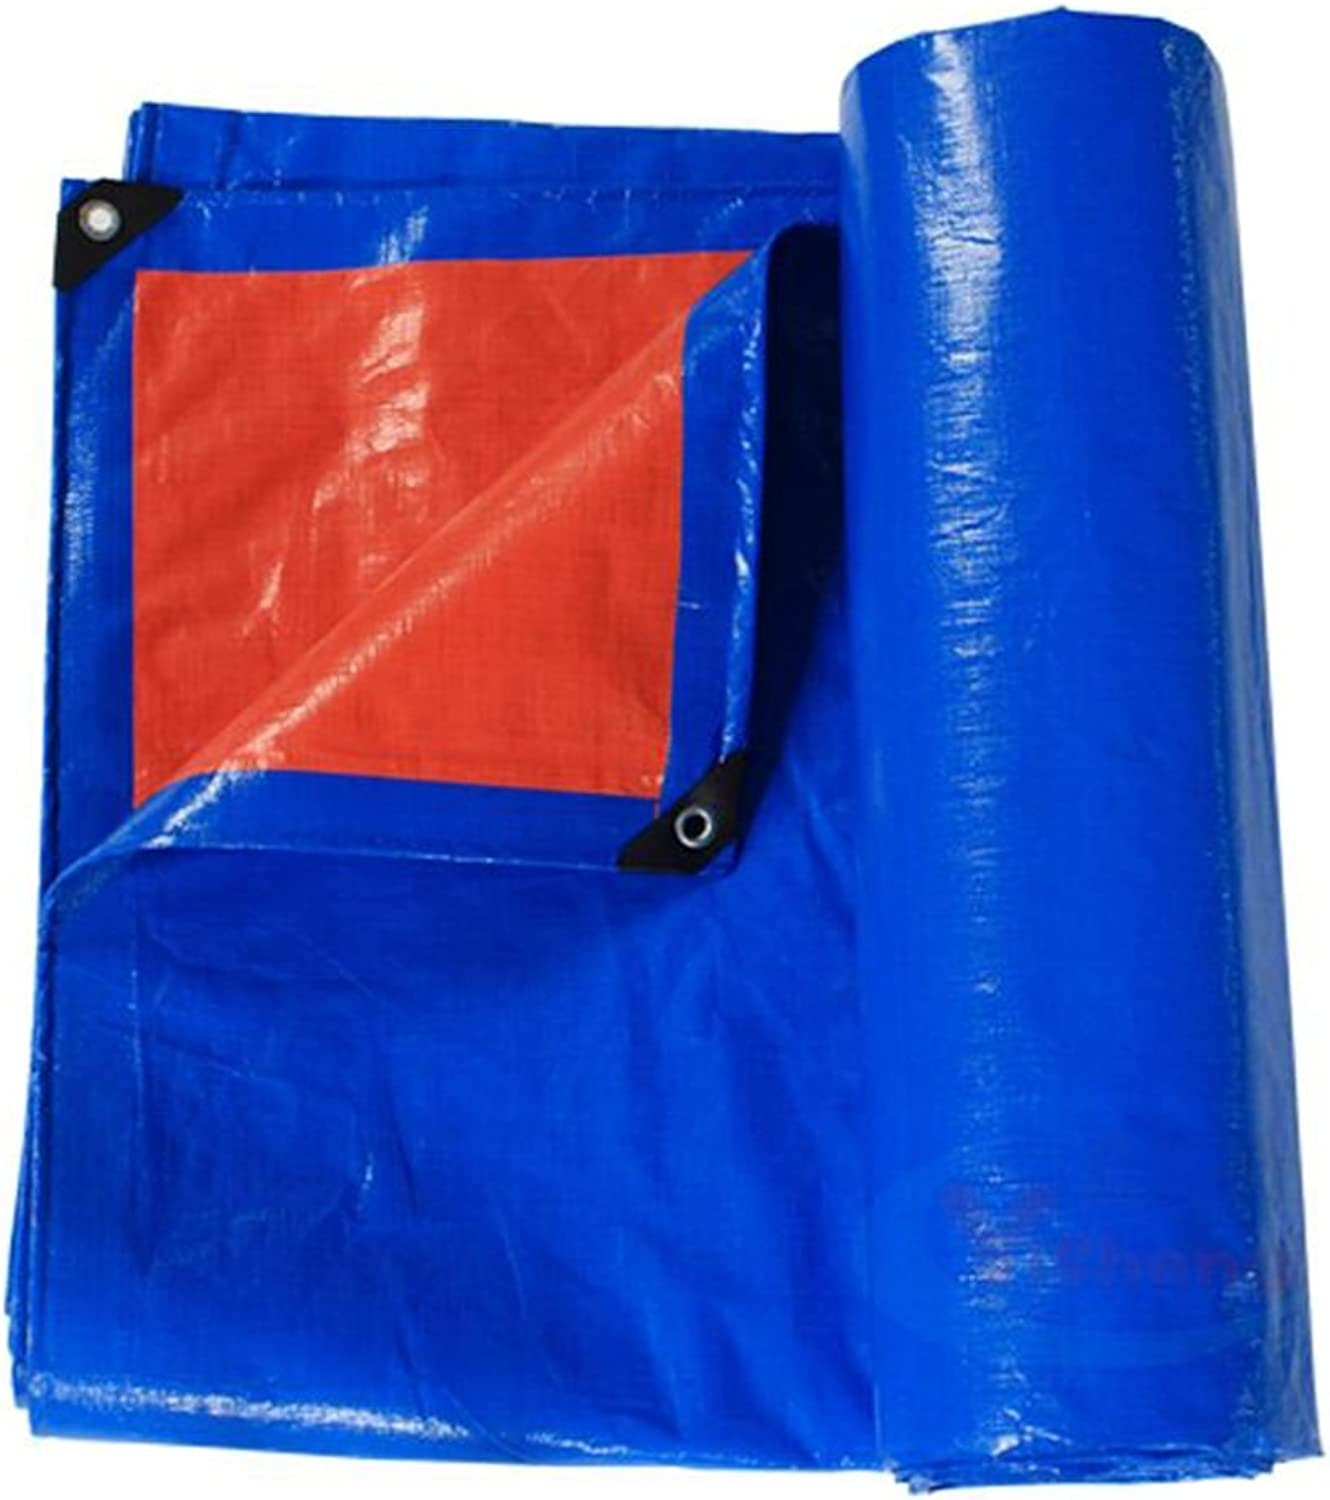 ZEMIN Tarpaulin Sunscreen Waterproof Sheet Tent Roof Windproof Foldable Polyester, blueee, 180G M2, 20 Sizes Available